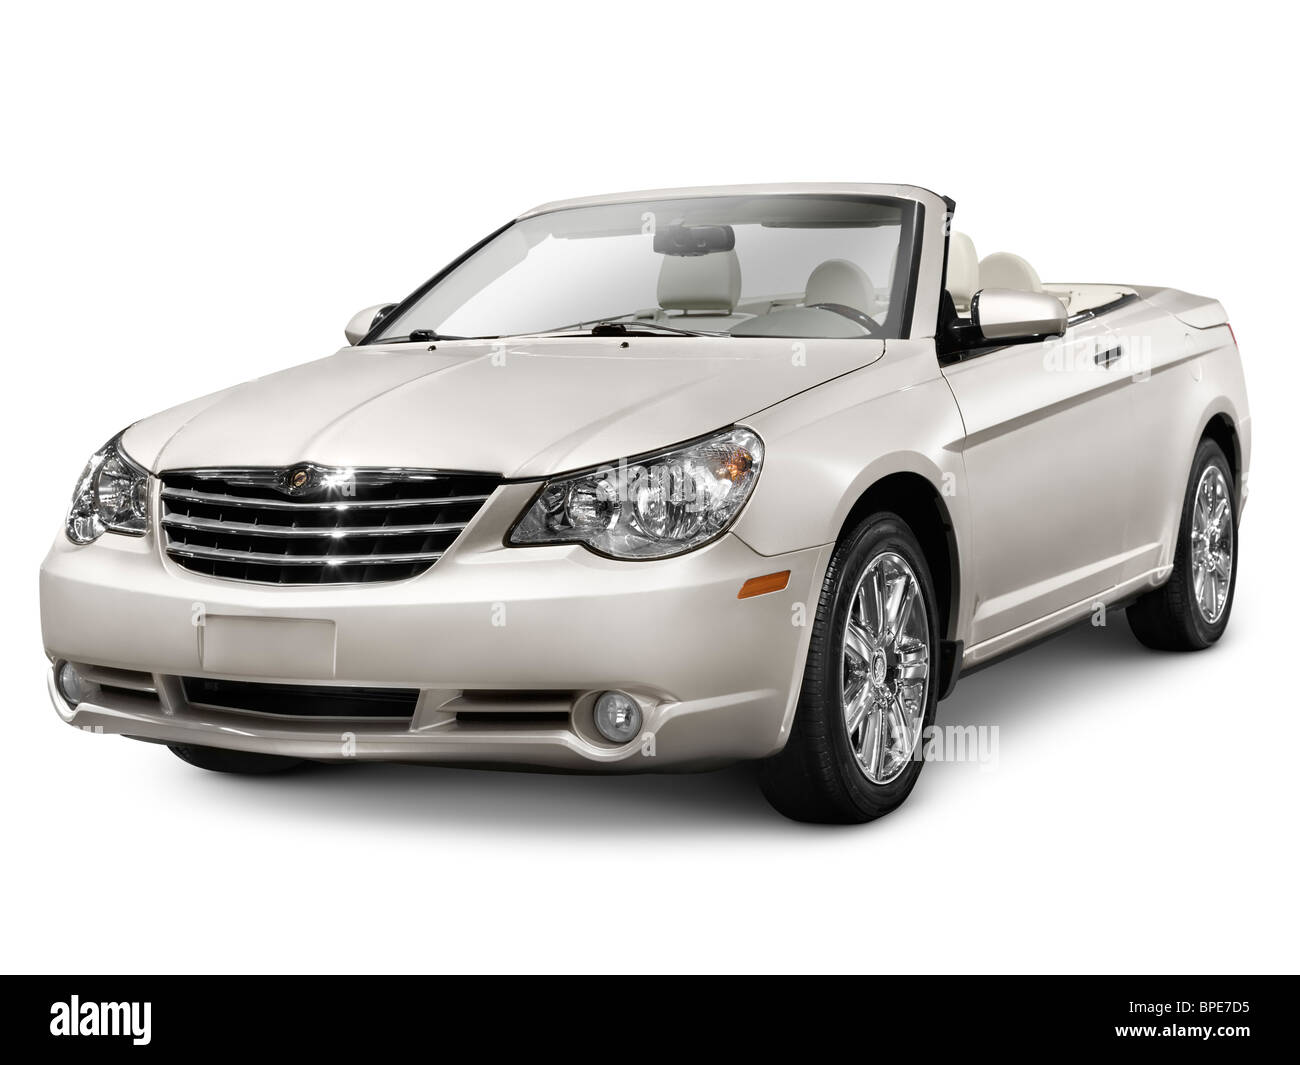 2010 Chrysler Sebring Convertible Limited. Isolated car on white background with clipping path. Stock Photo